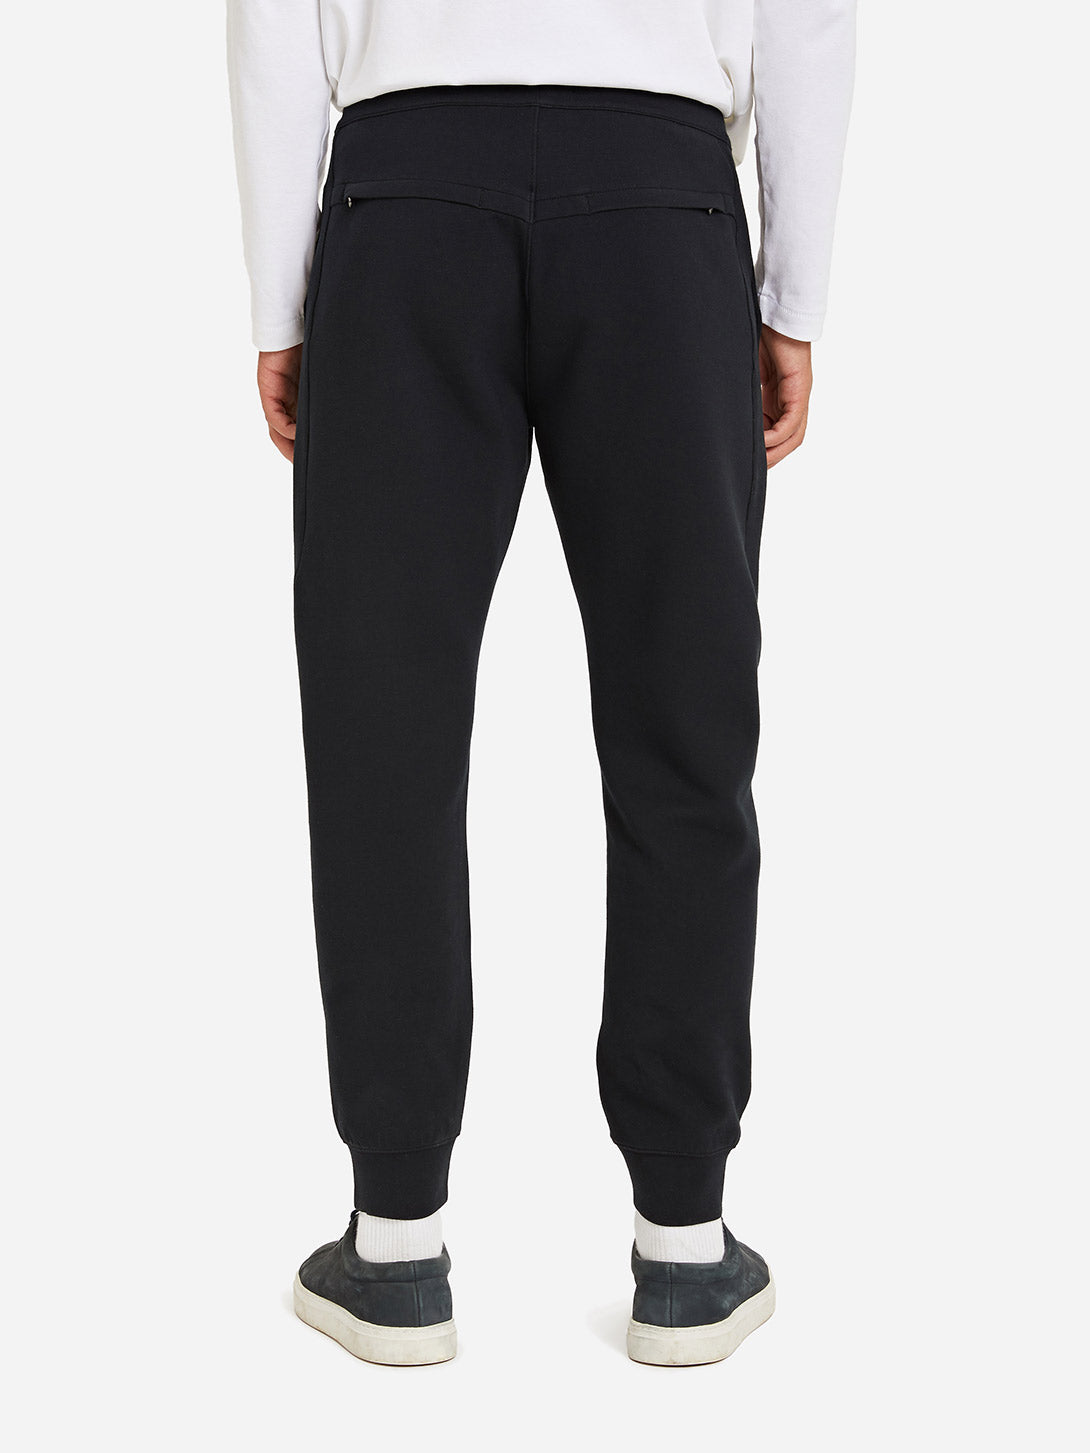 JET BLACK jogger sweatpants for men apollo sweatpants by ons clothing